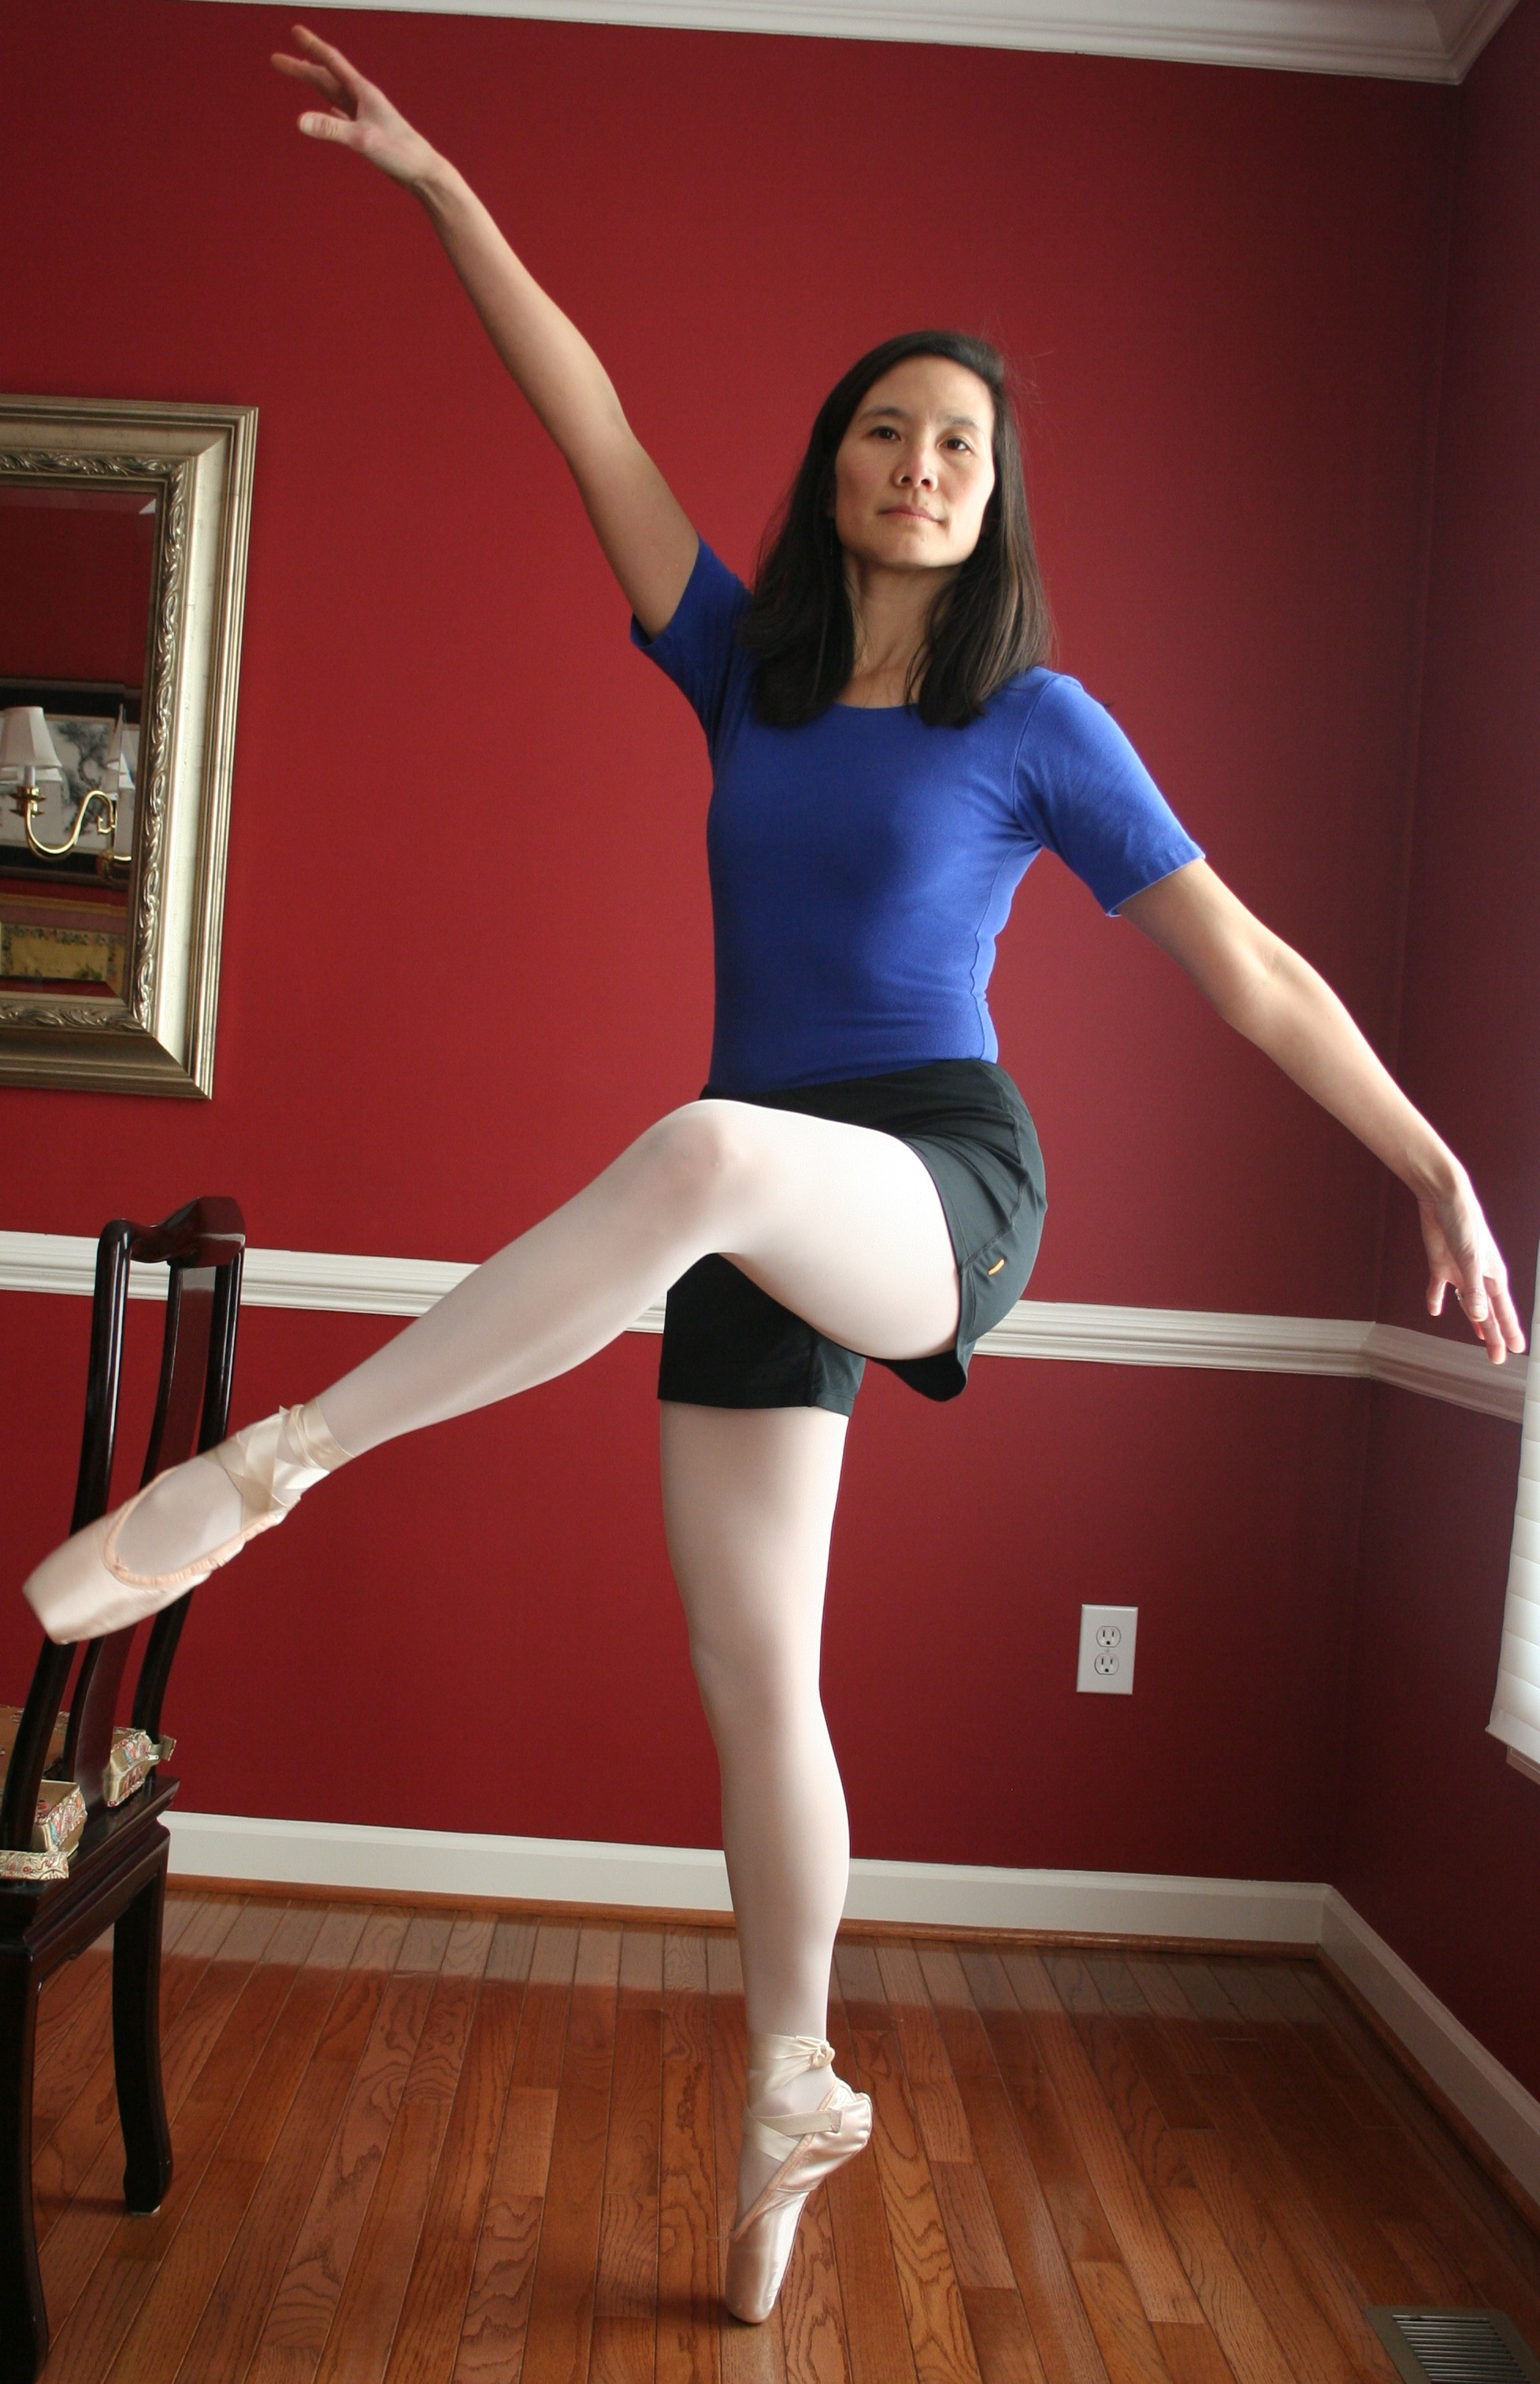 Maryland Archives - Adult Ballerina Project